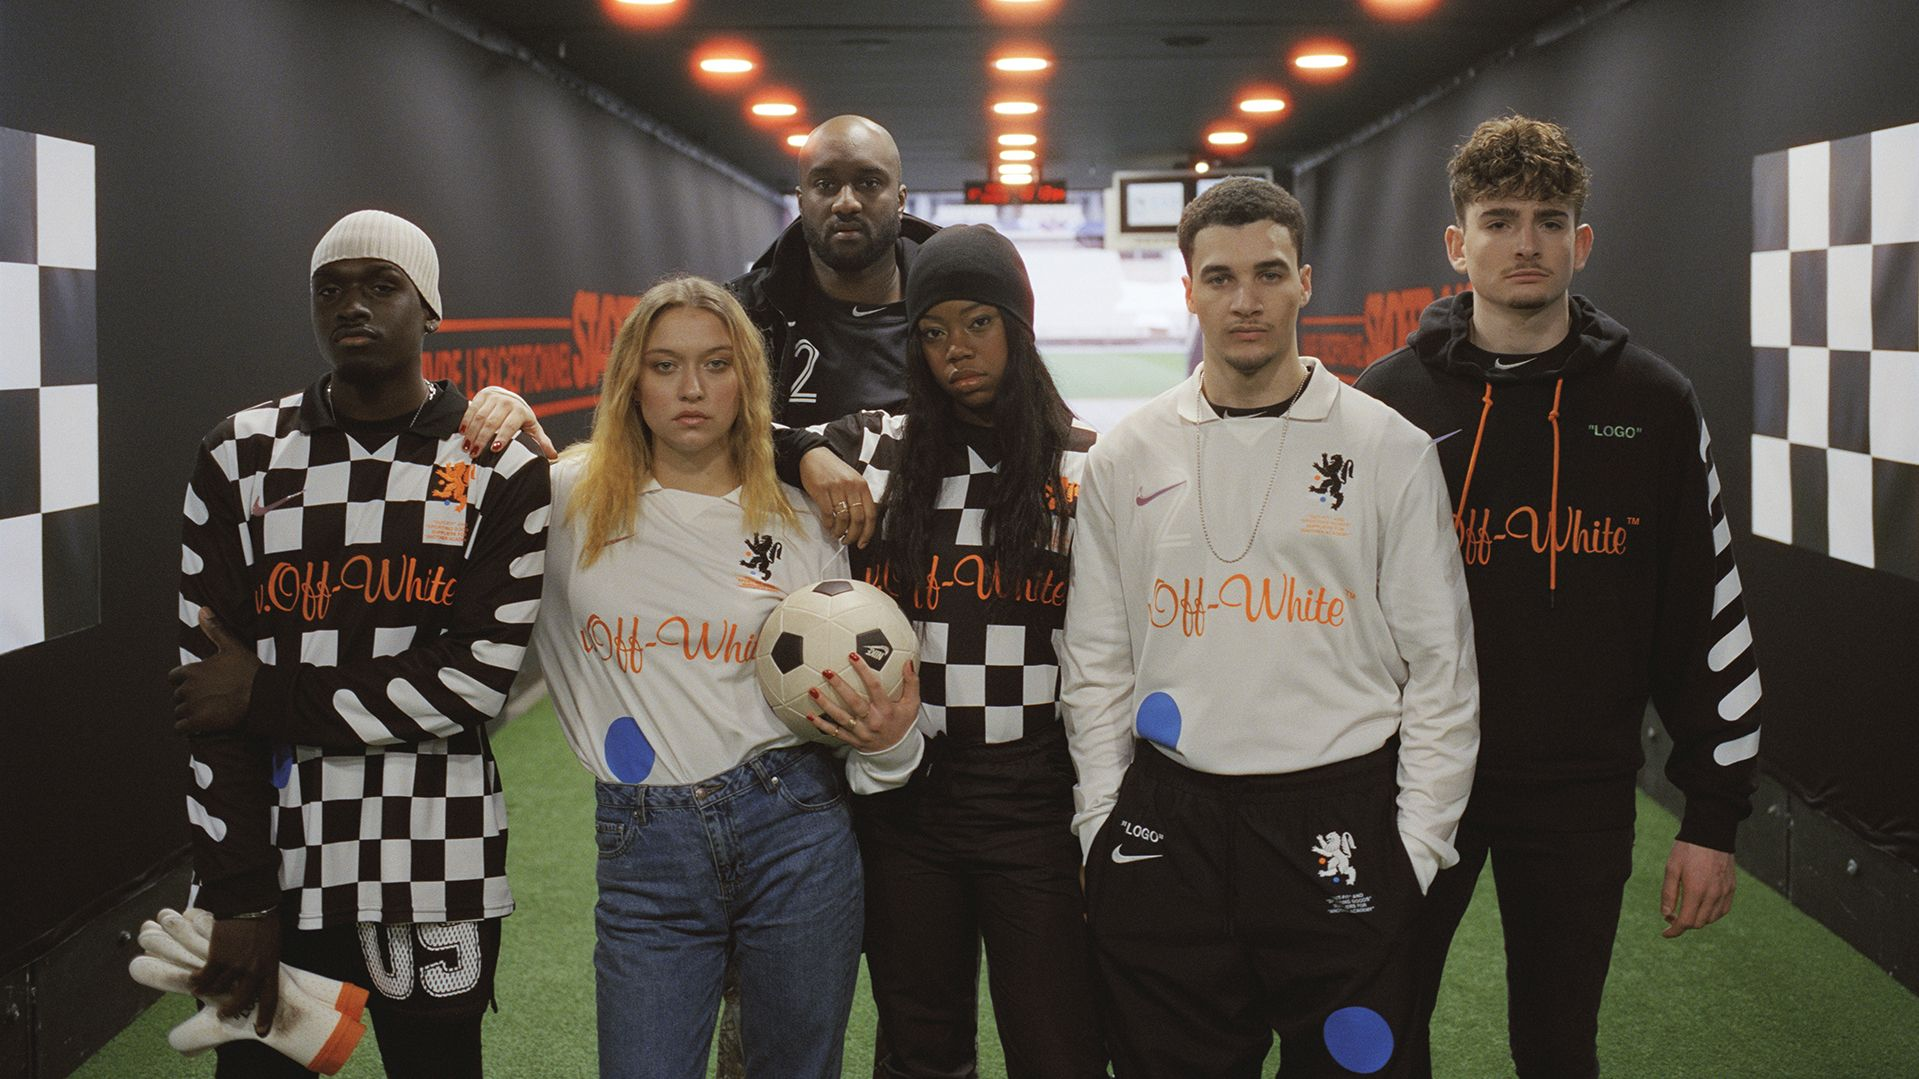 Kim Jones And Virgil Abloh Add A Stylish Spin To The Football Kit For Nike